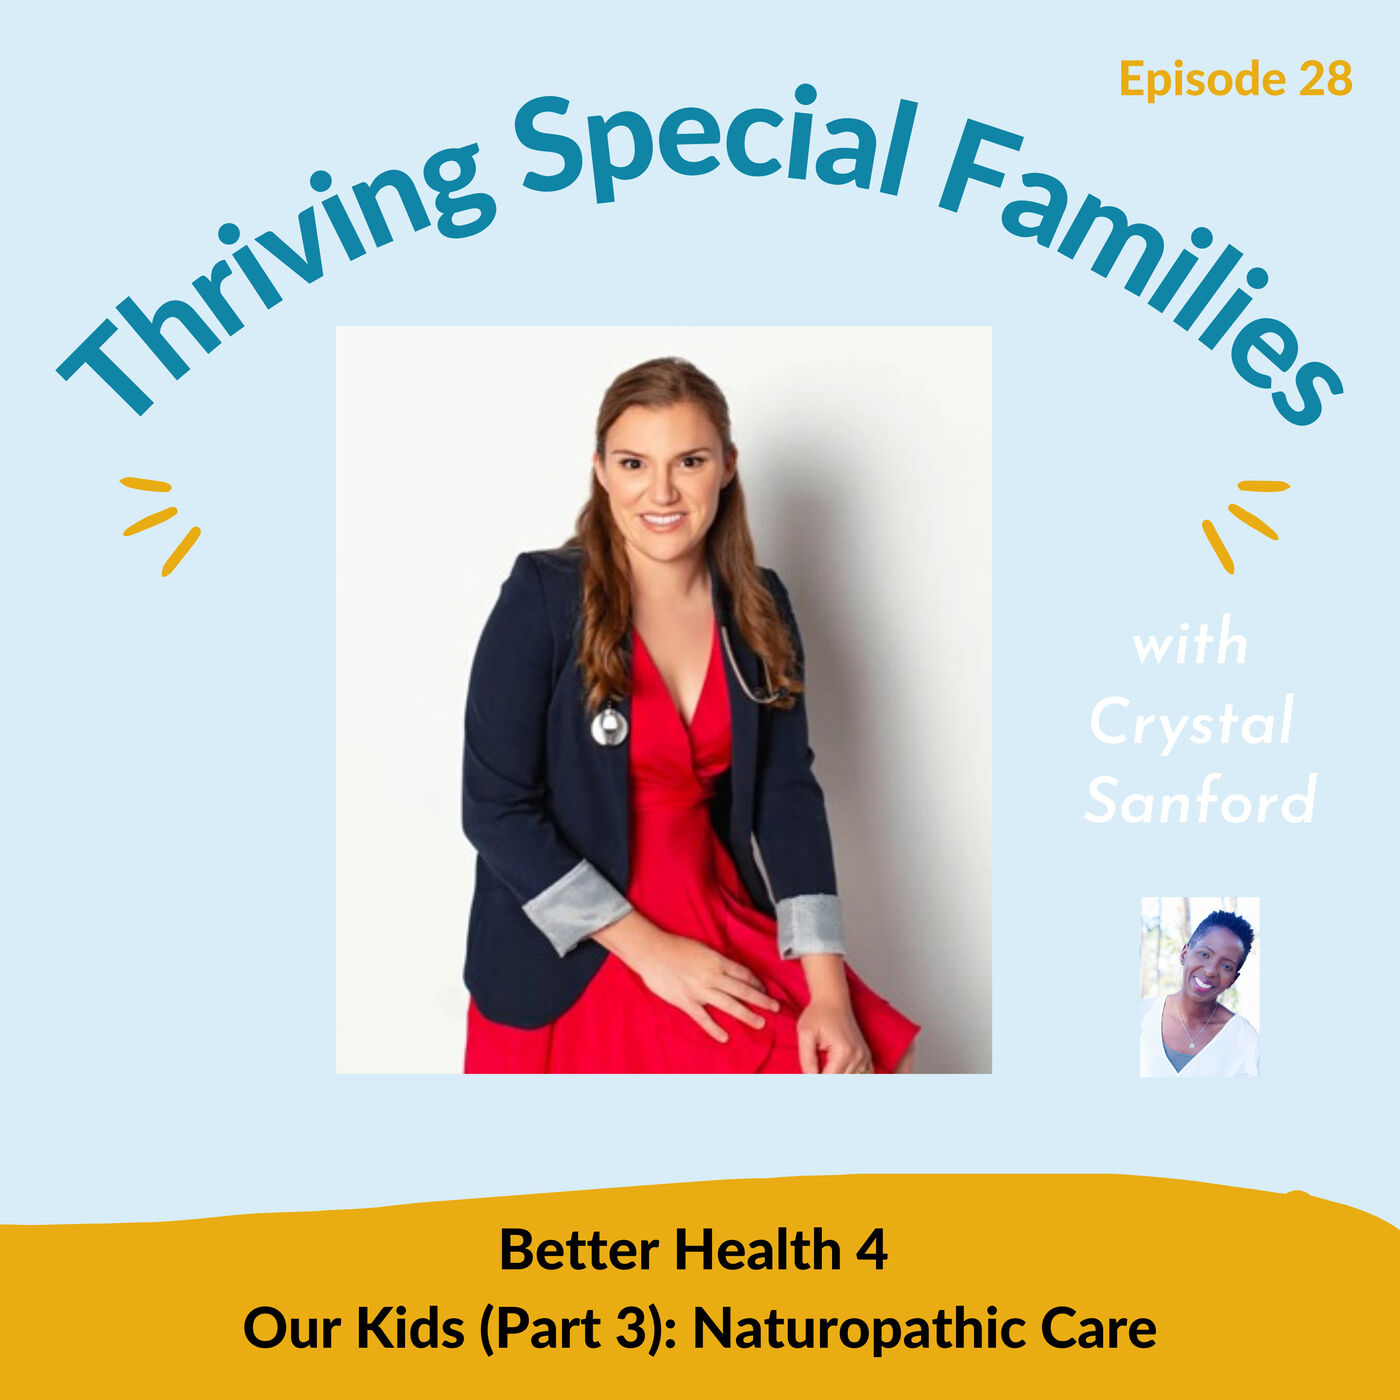 Better Health 4 Our Kids (Part 3): Naturopathic Care